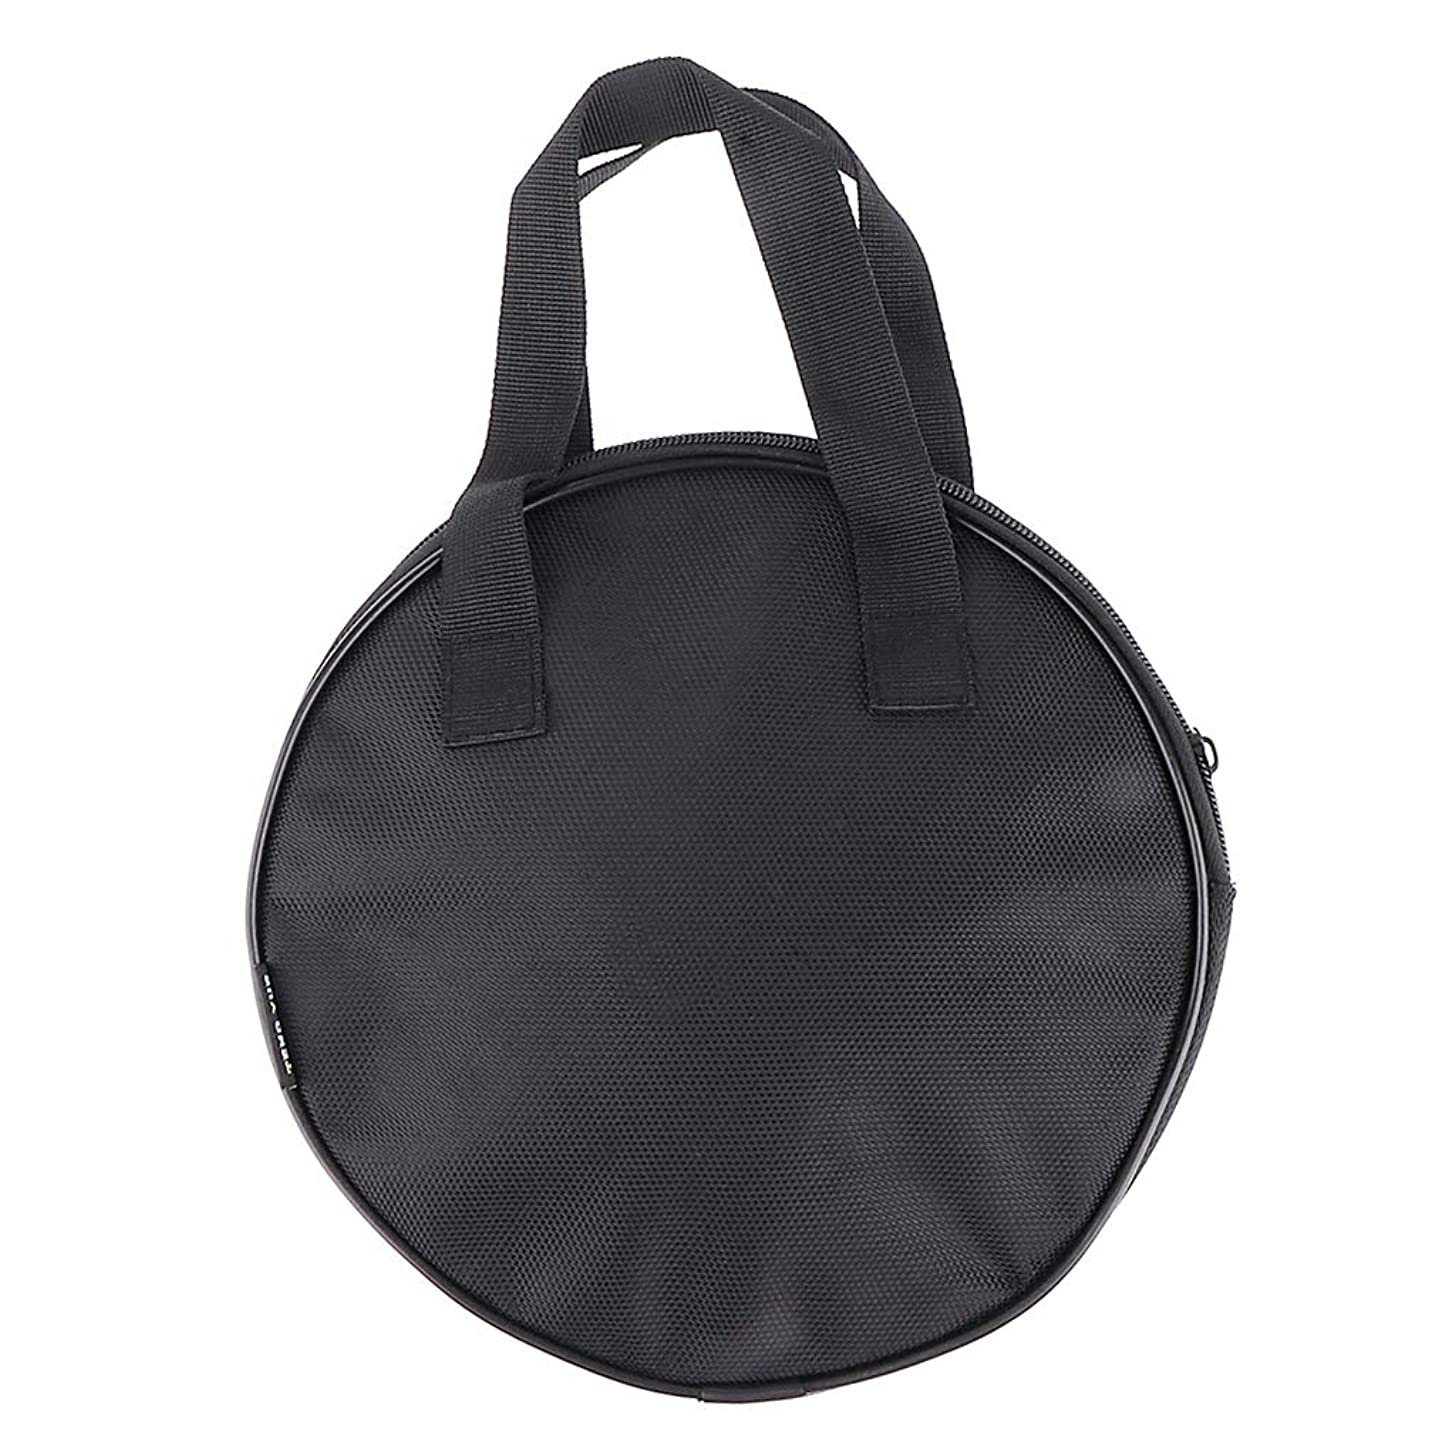 Prettyia Waterproof Drum Gig Cymbal Bag Pouch Case Holder Percussion Accessory - Diameter 28cm